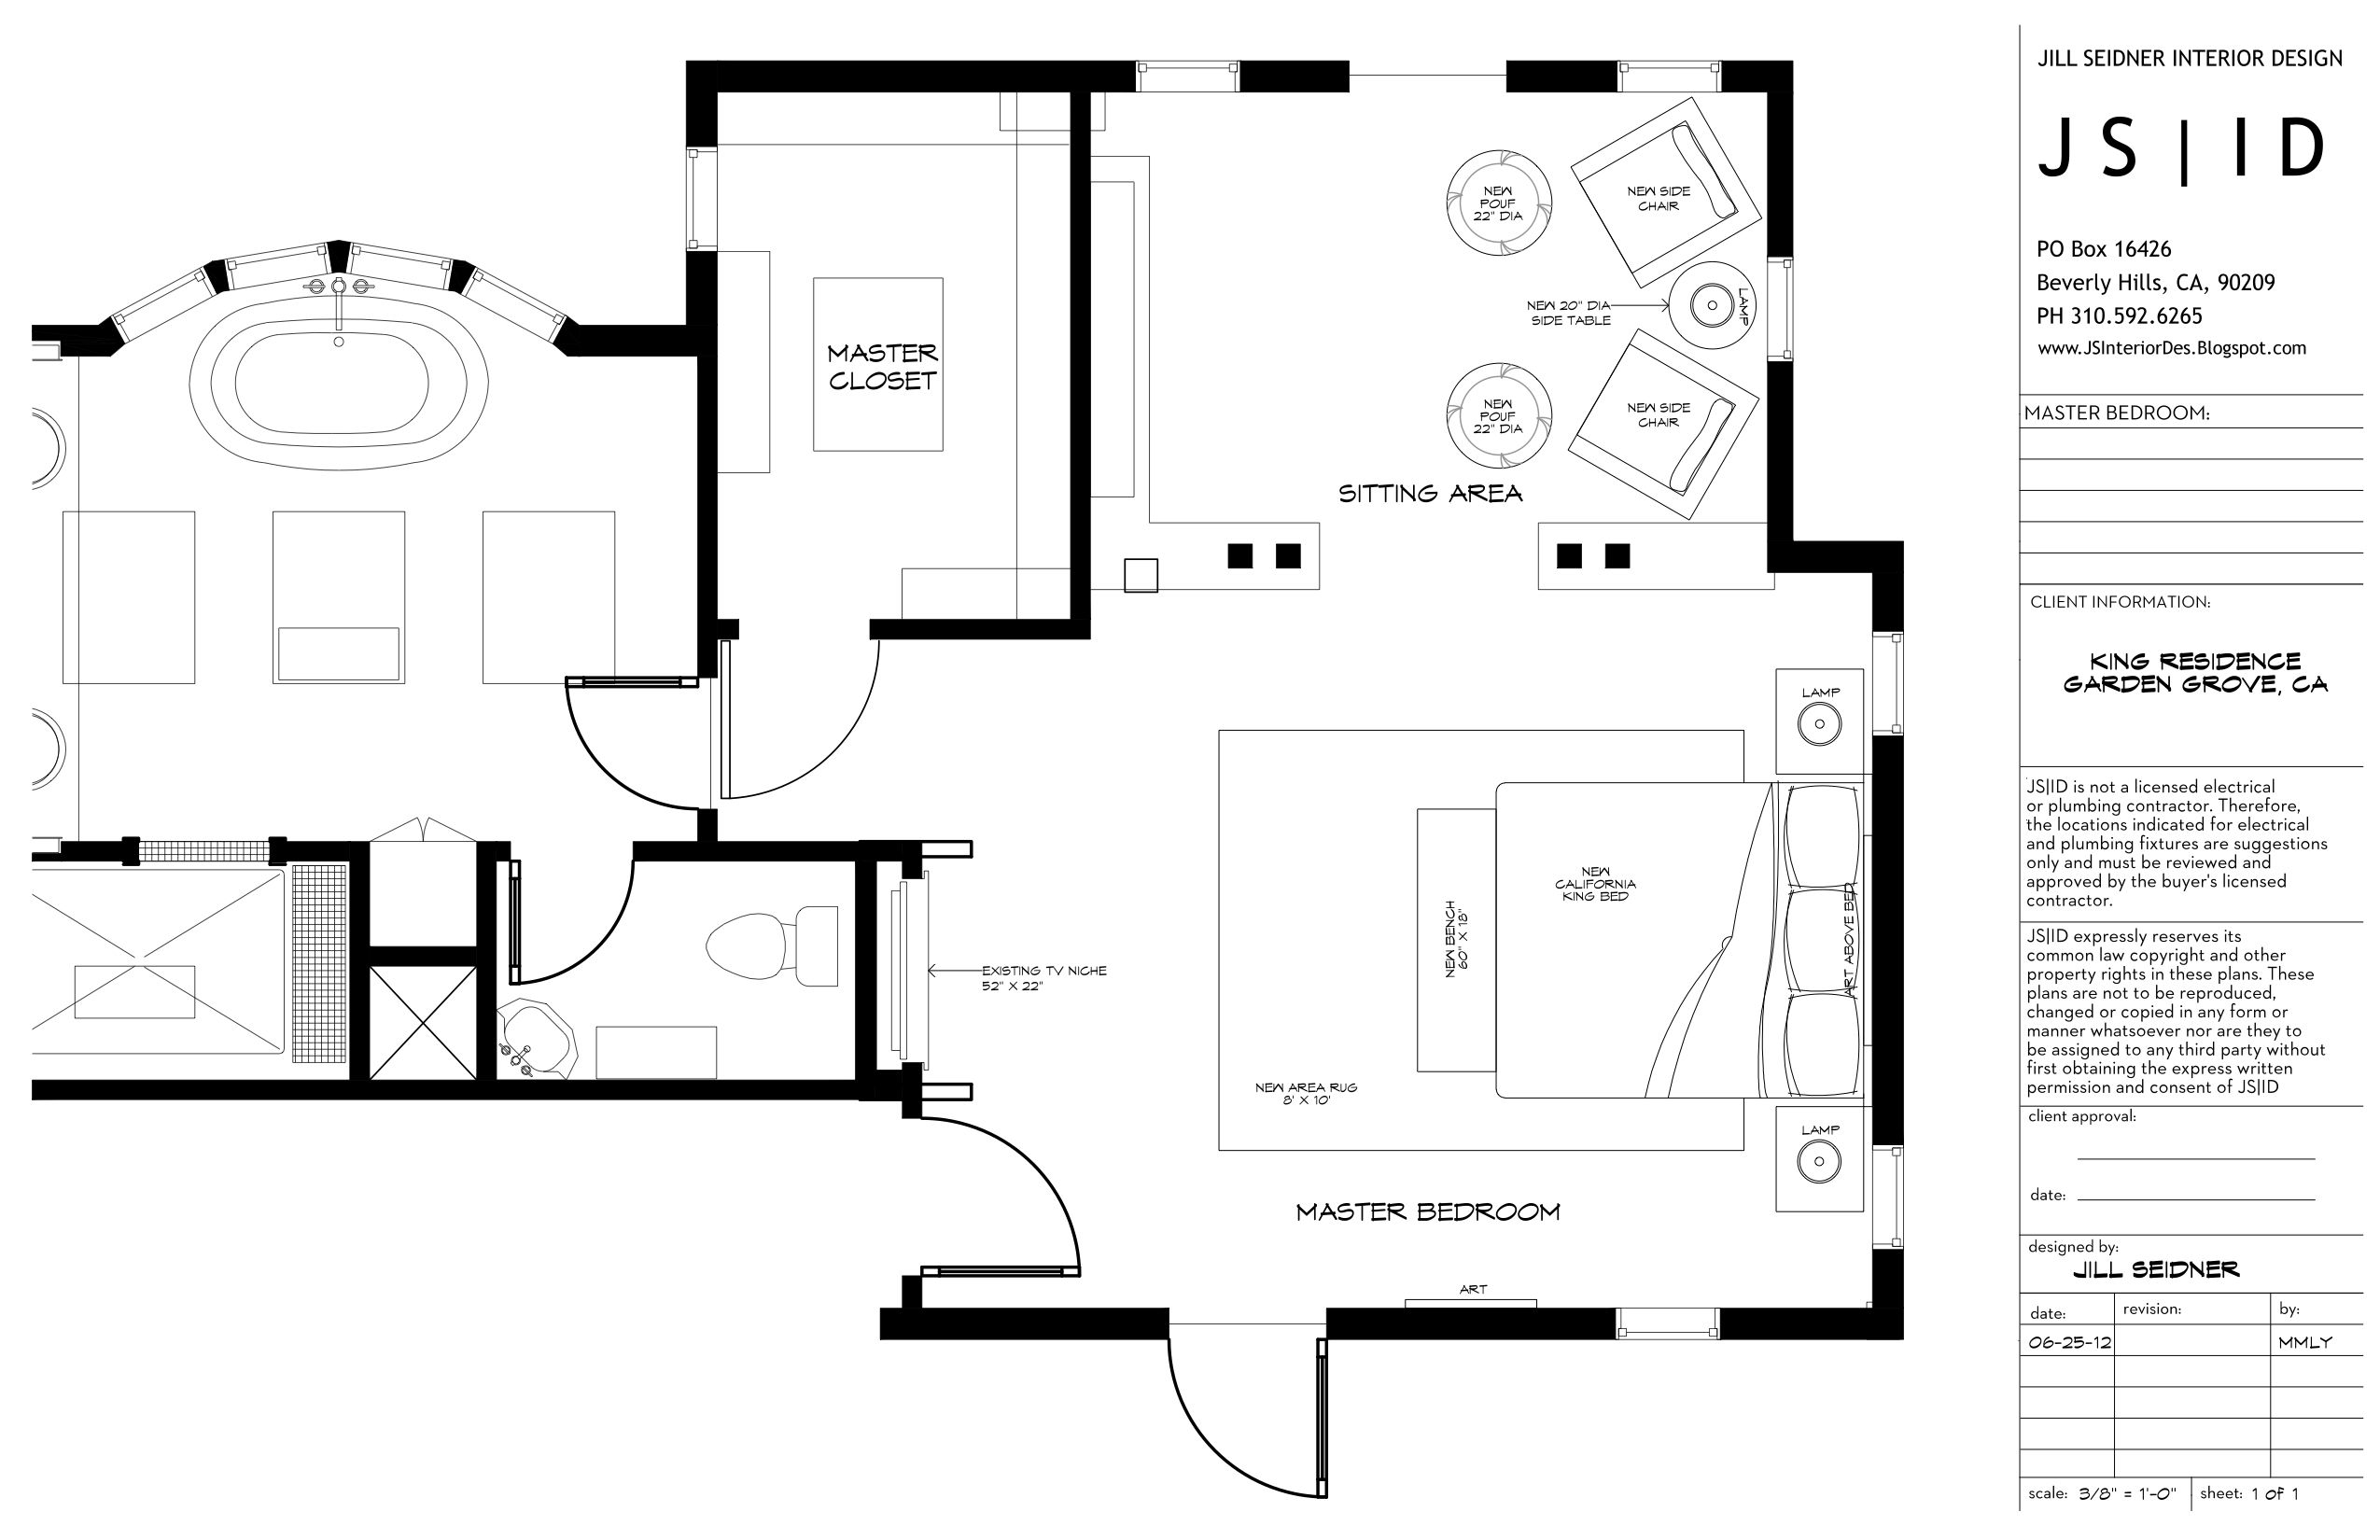 Garden Grove Ca Residence Master Bedroom Furniture Floor Plan Layout Cad By Morgan Lund For